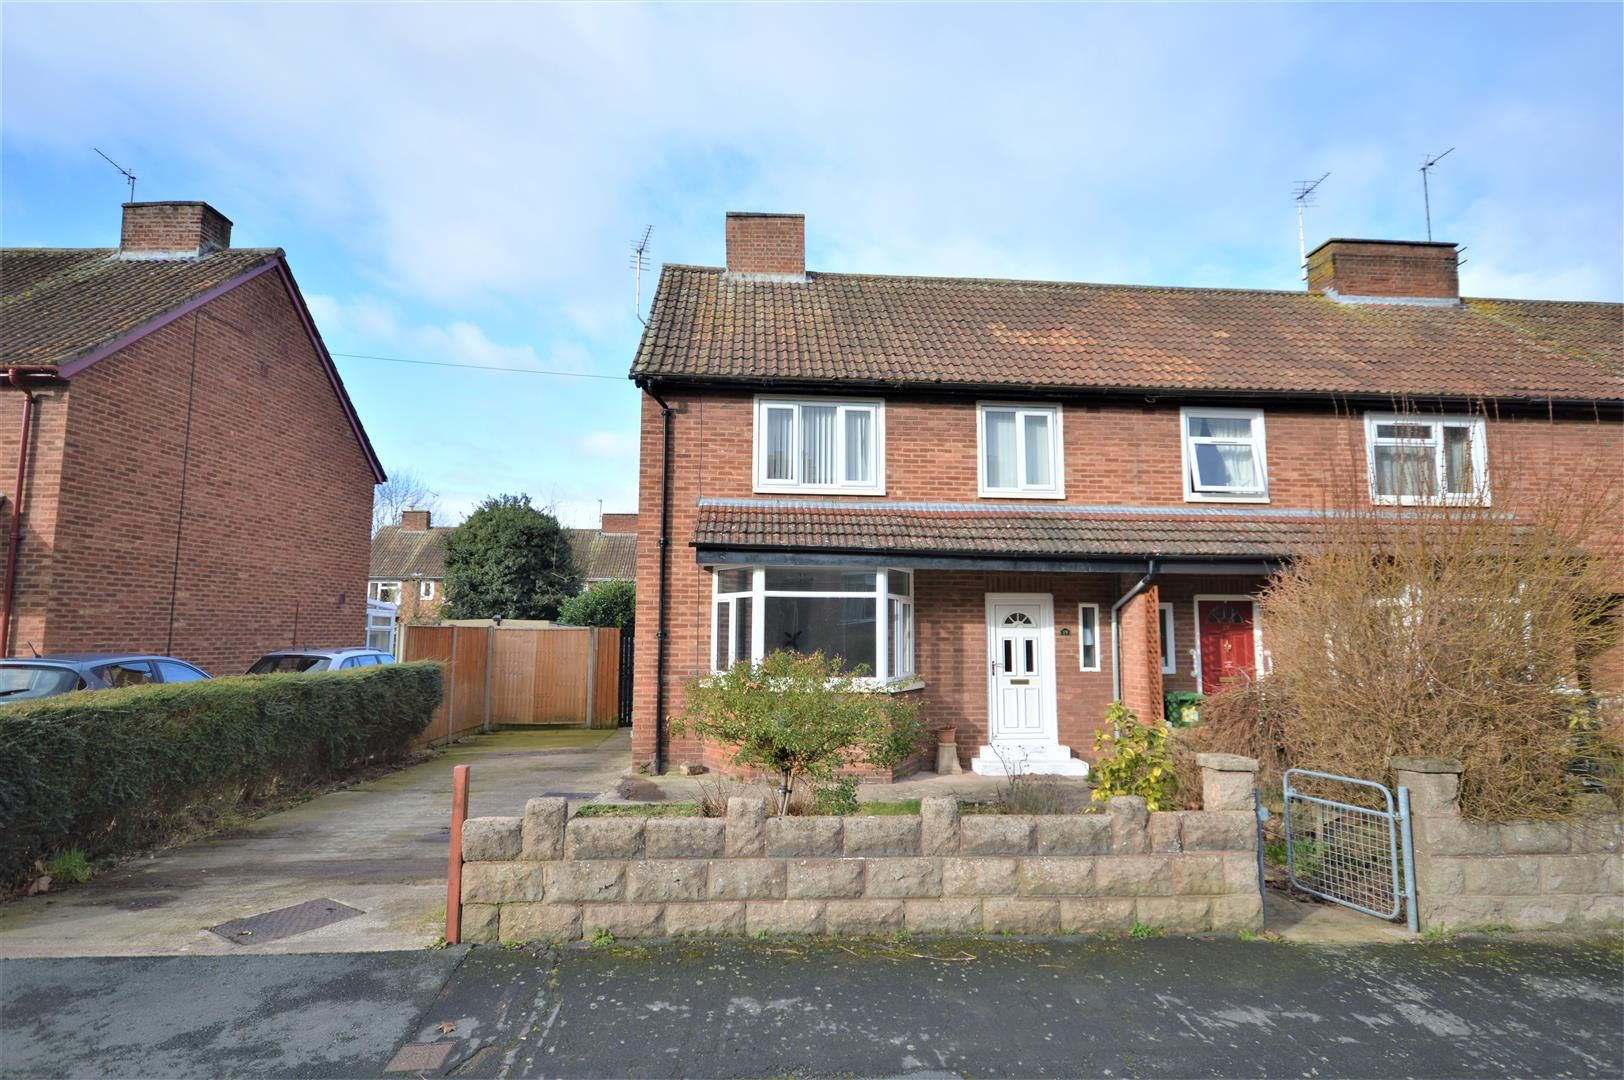 3 bed end-of-terrace for sale in Hereford  - Property Image 1